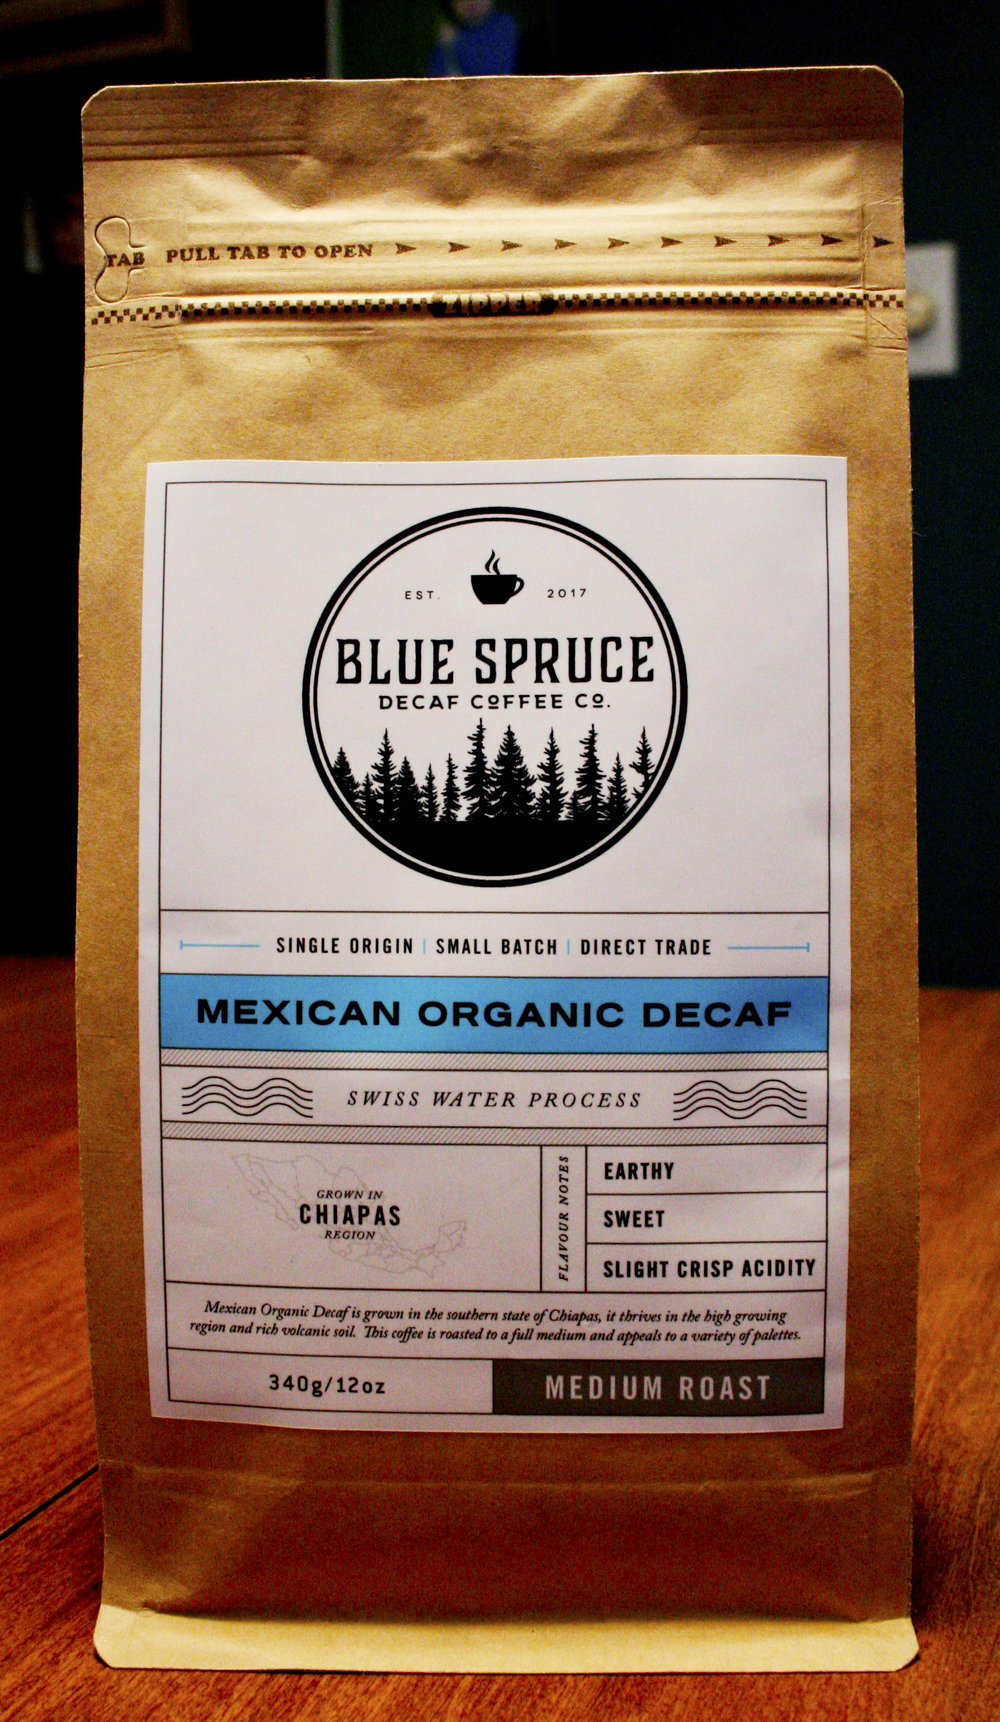 A bag of Blue Spruce Decaf Coffee Co.'s Mexican Organic Decaf coffee.